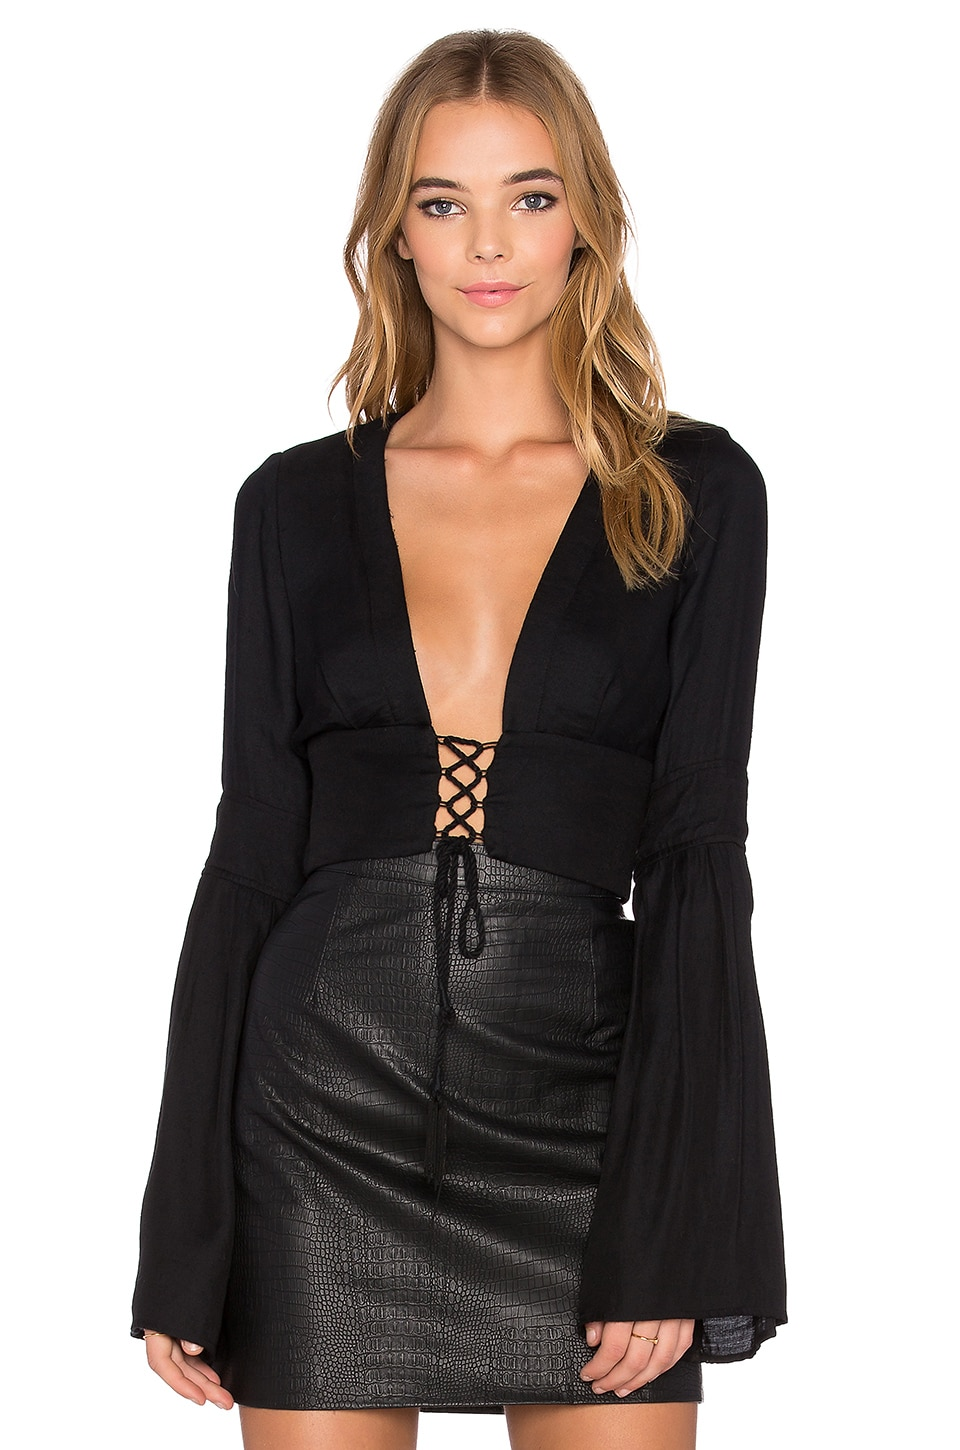 BEC&BRIDGE Panama Long Sleeve Crop Top in Black